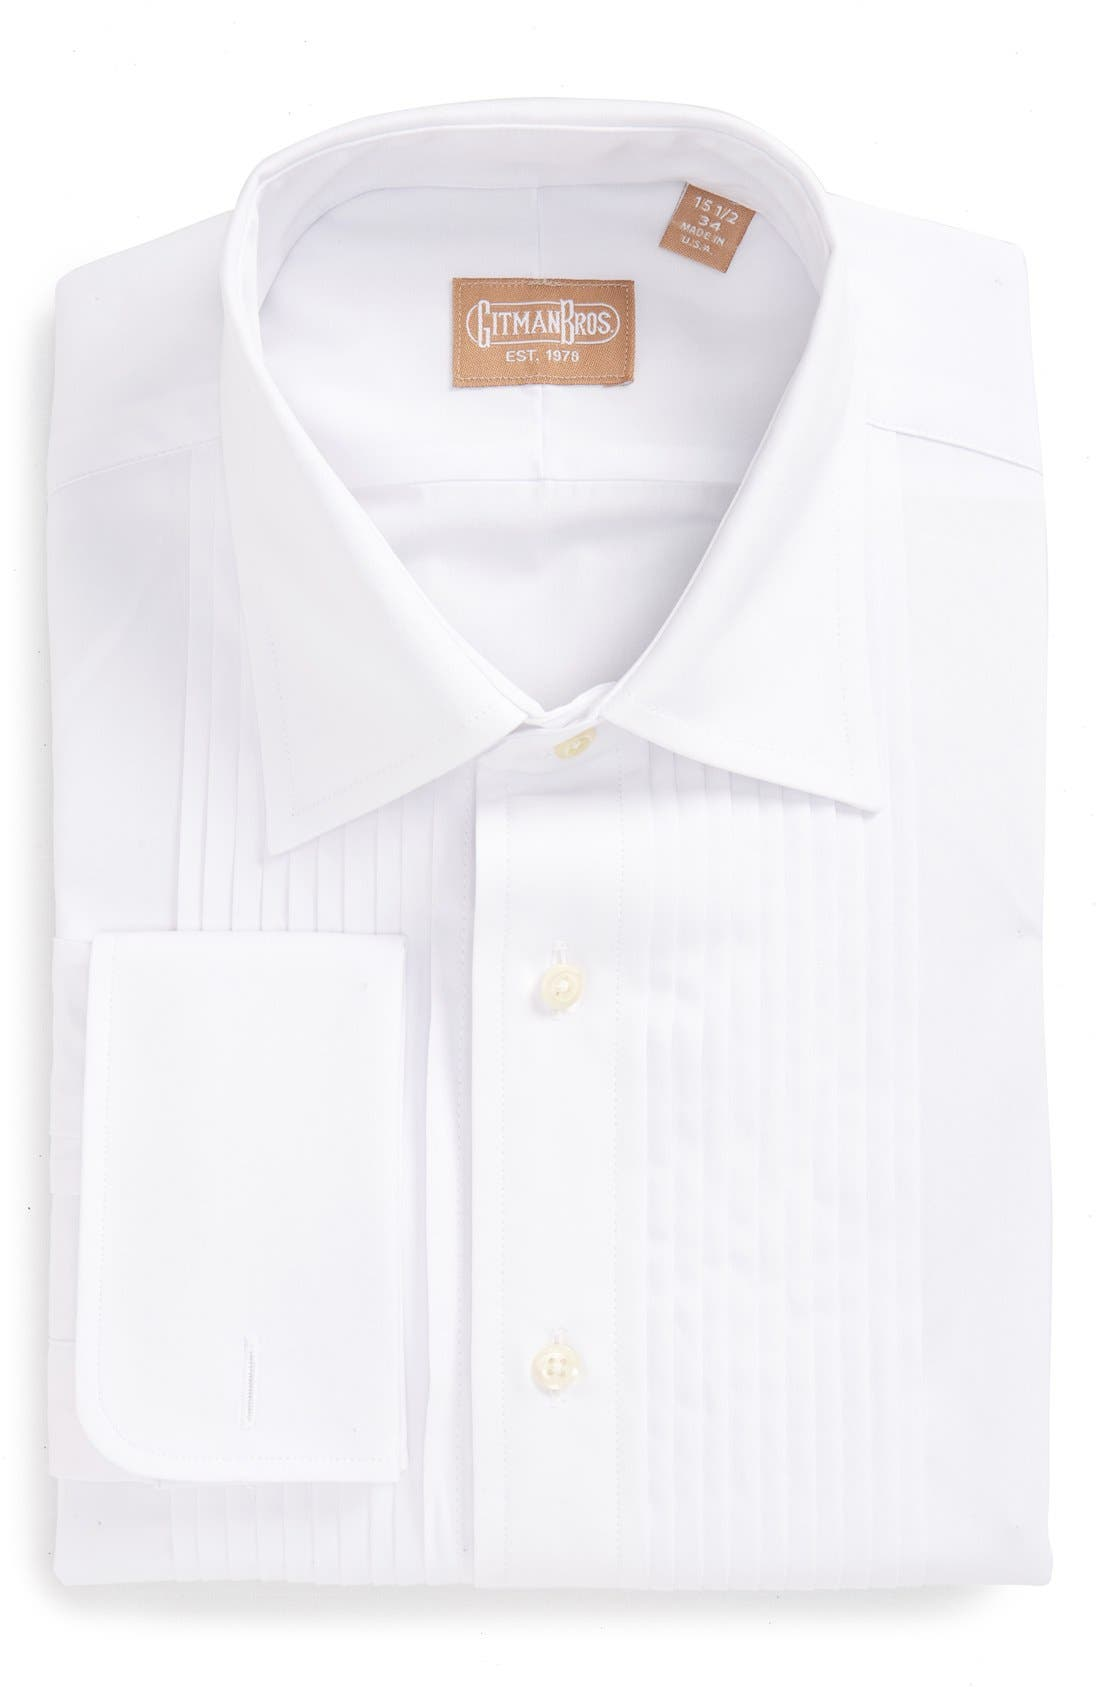 Regular Fit Pleated Dress Shirt,                             Main thumbnail 1, color,                             WHITE